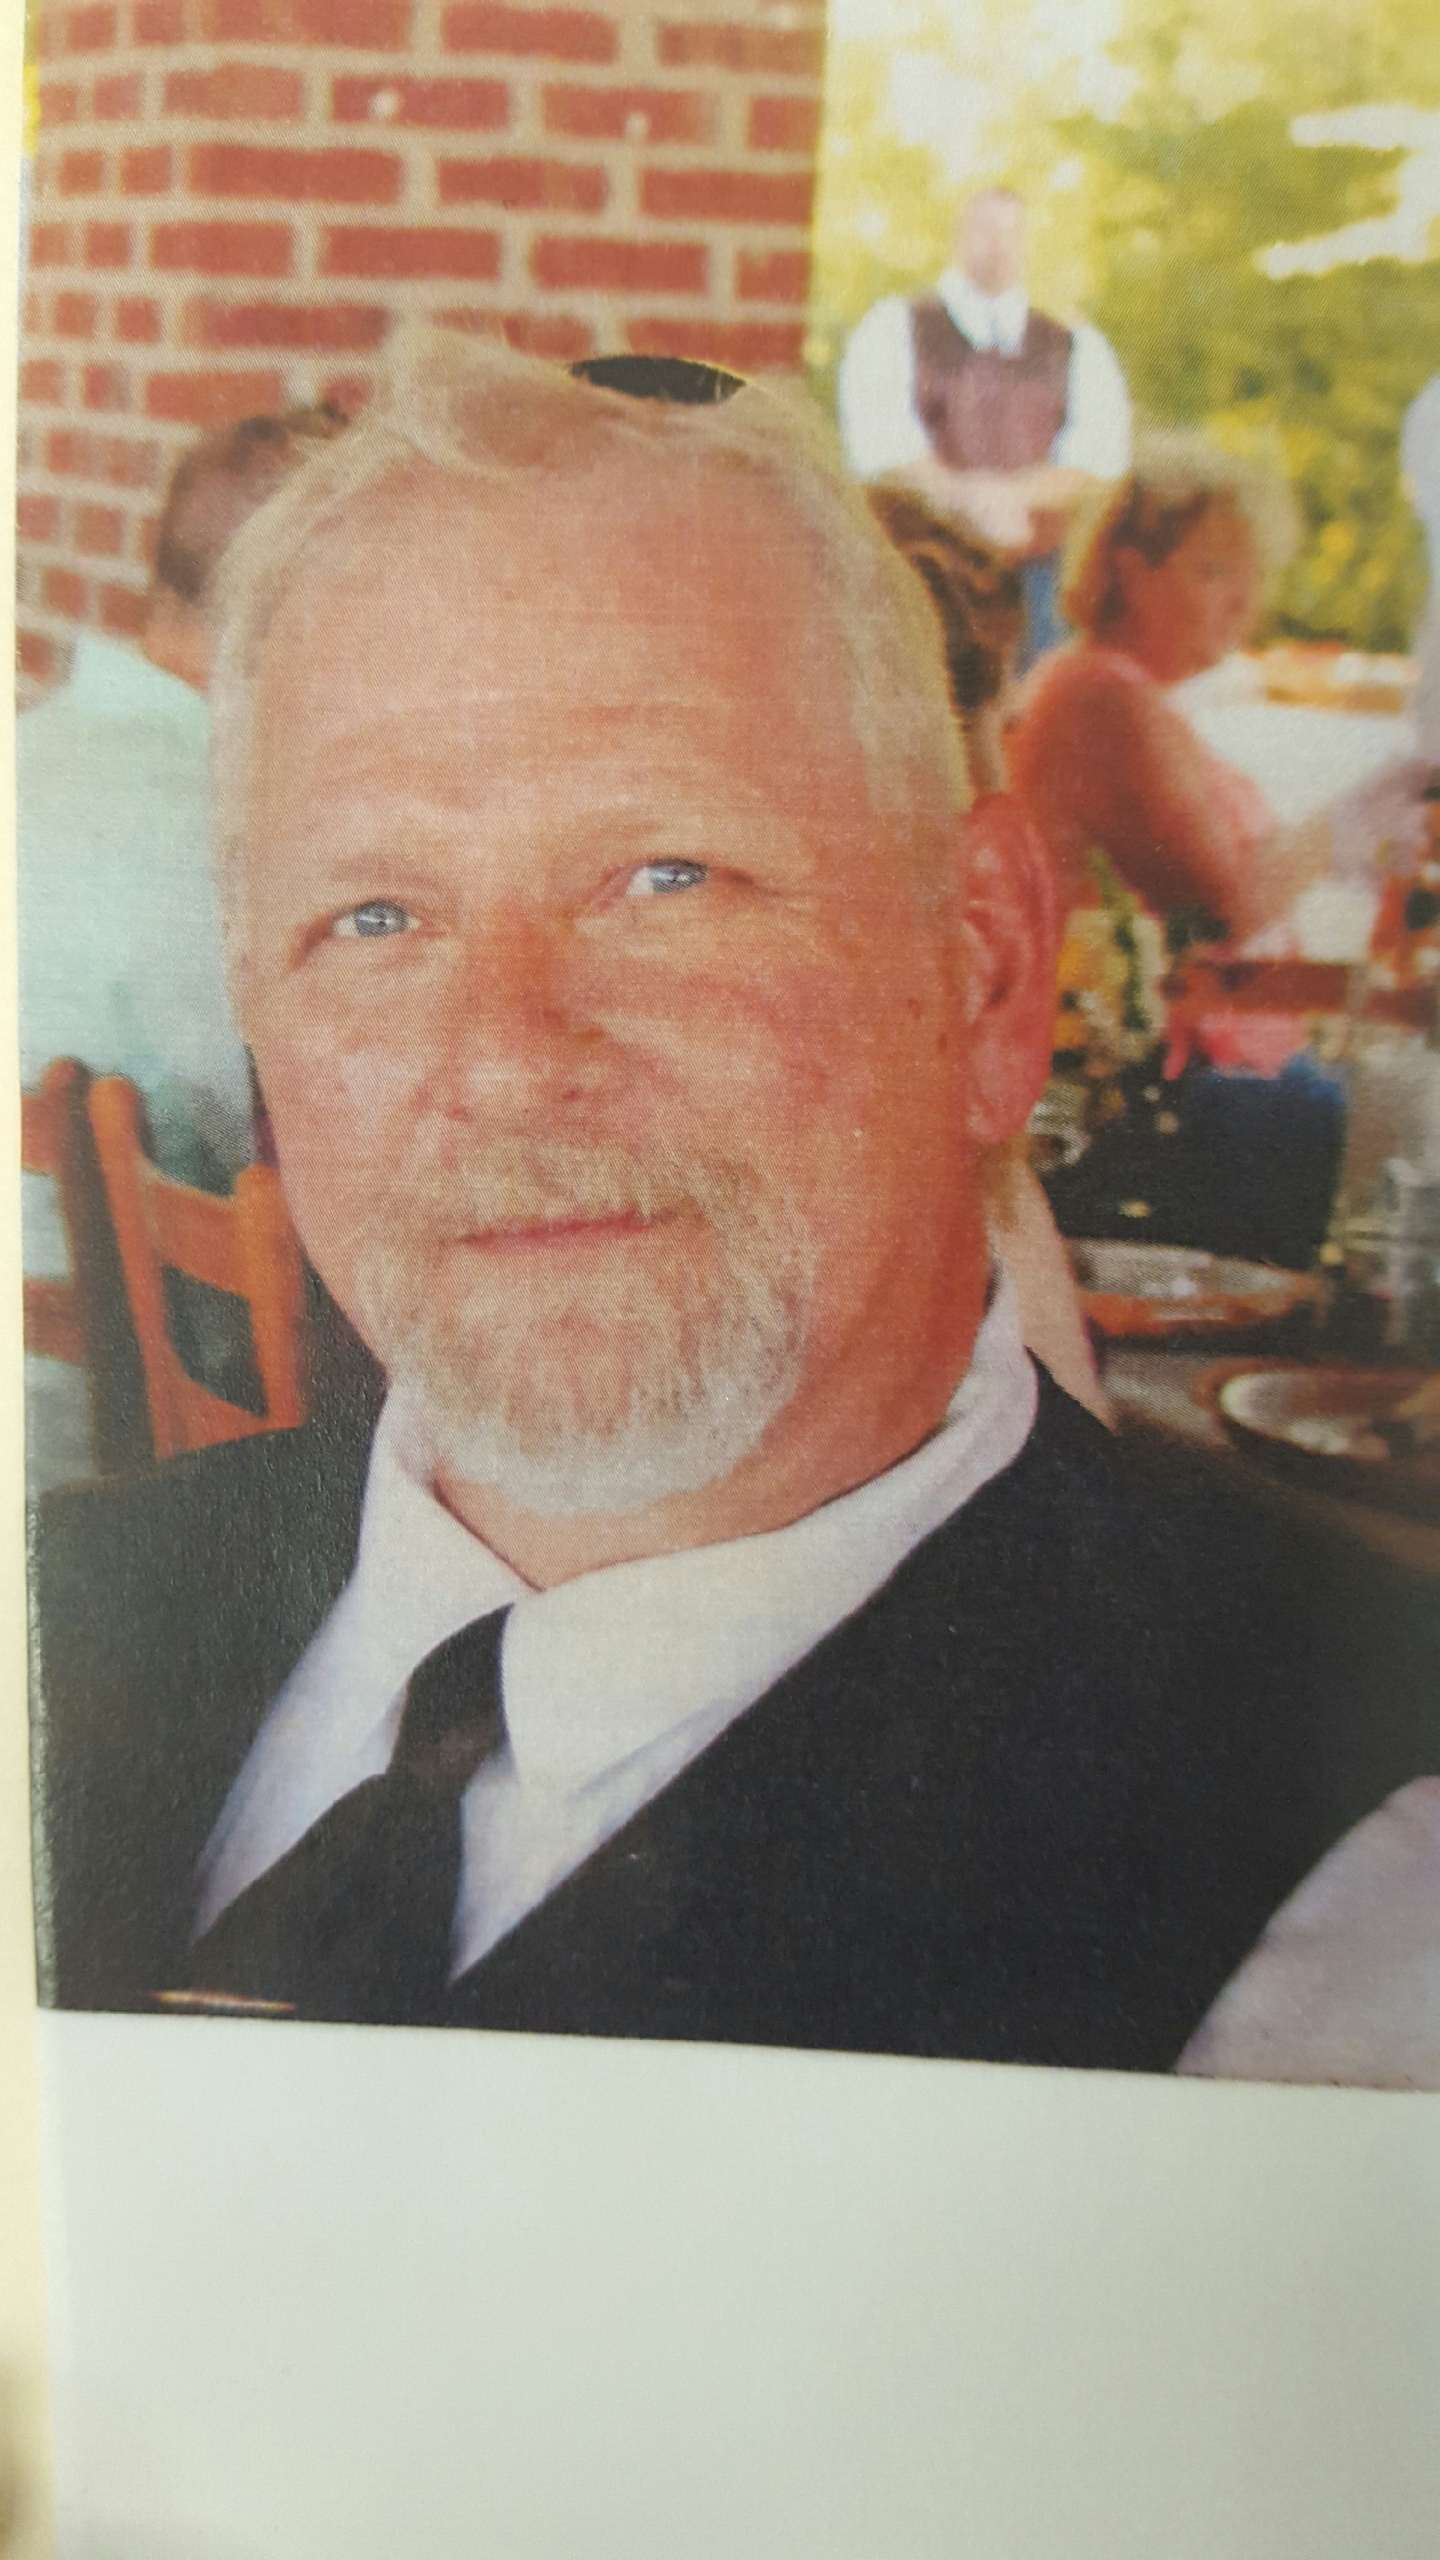 Search for missing man